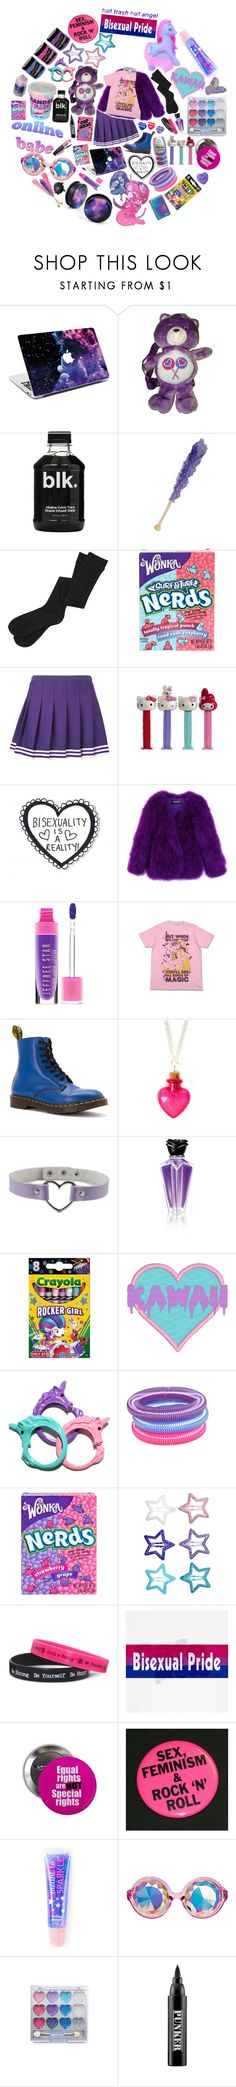 """Life of bi"" by sw-13 ❤ liked on Polyvore featuring Nokia, River Island, Hello Kitty, Balmain, Dr. Martens, claire's, Hot Topic, Zippo, H&M and Cotton Candy"